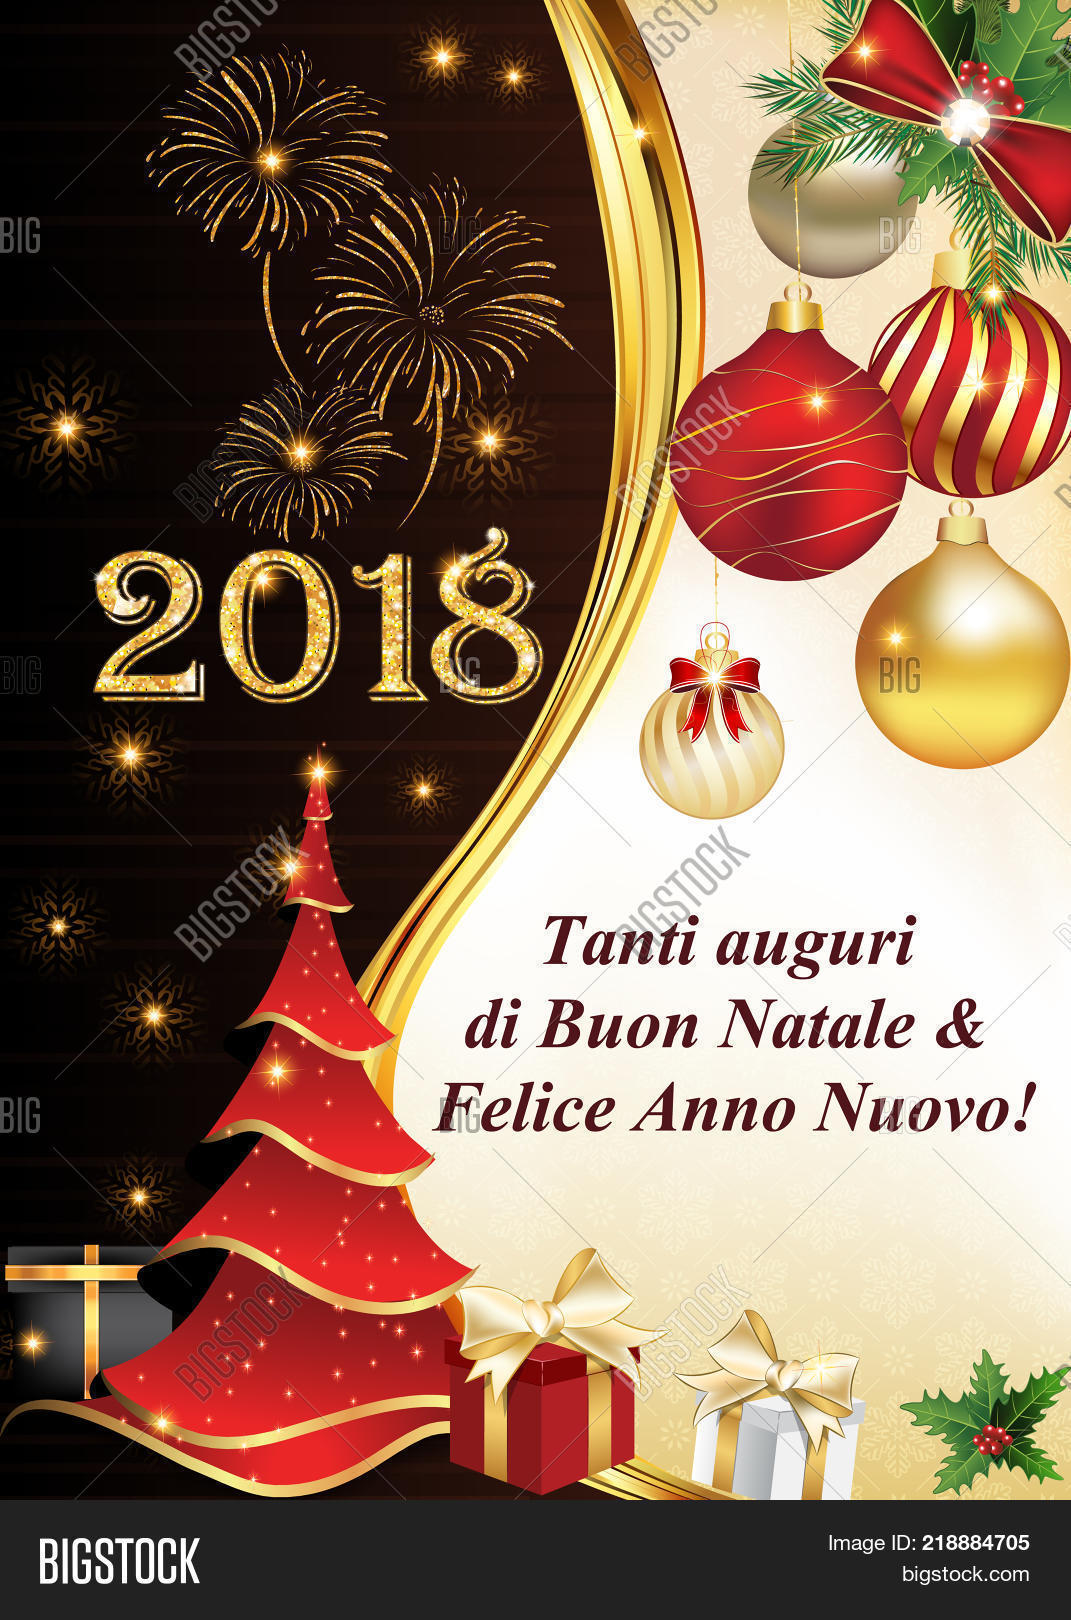 2018 italian corporate holiday season greeting card designed for italian speaking clients companies text